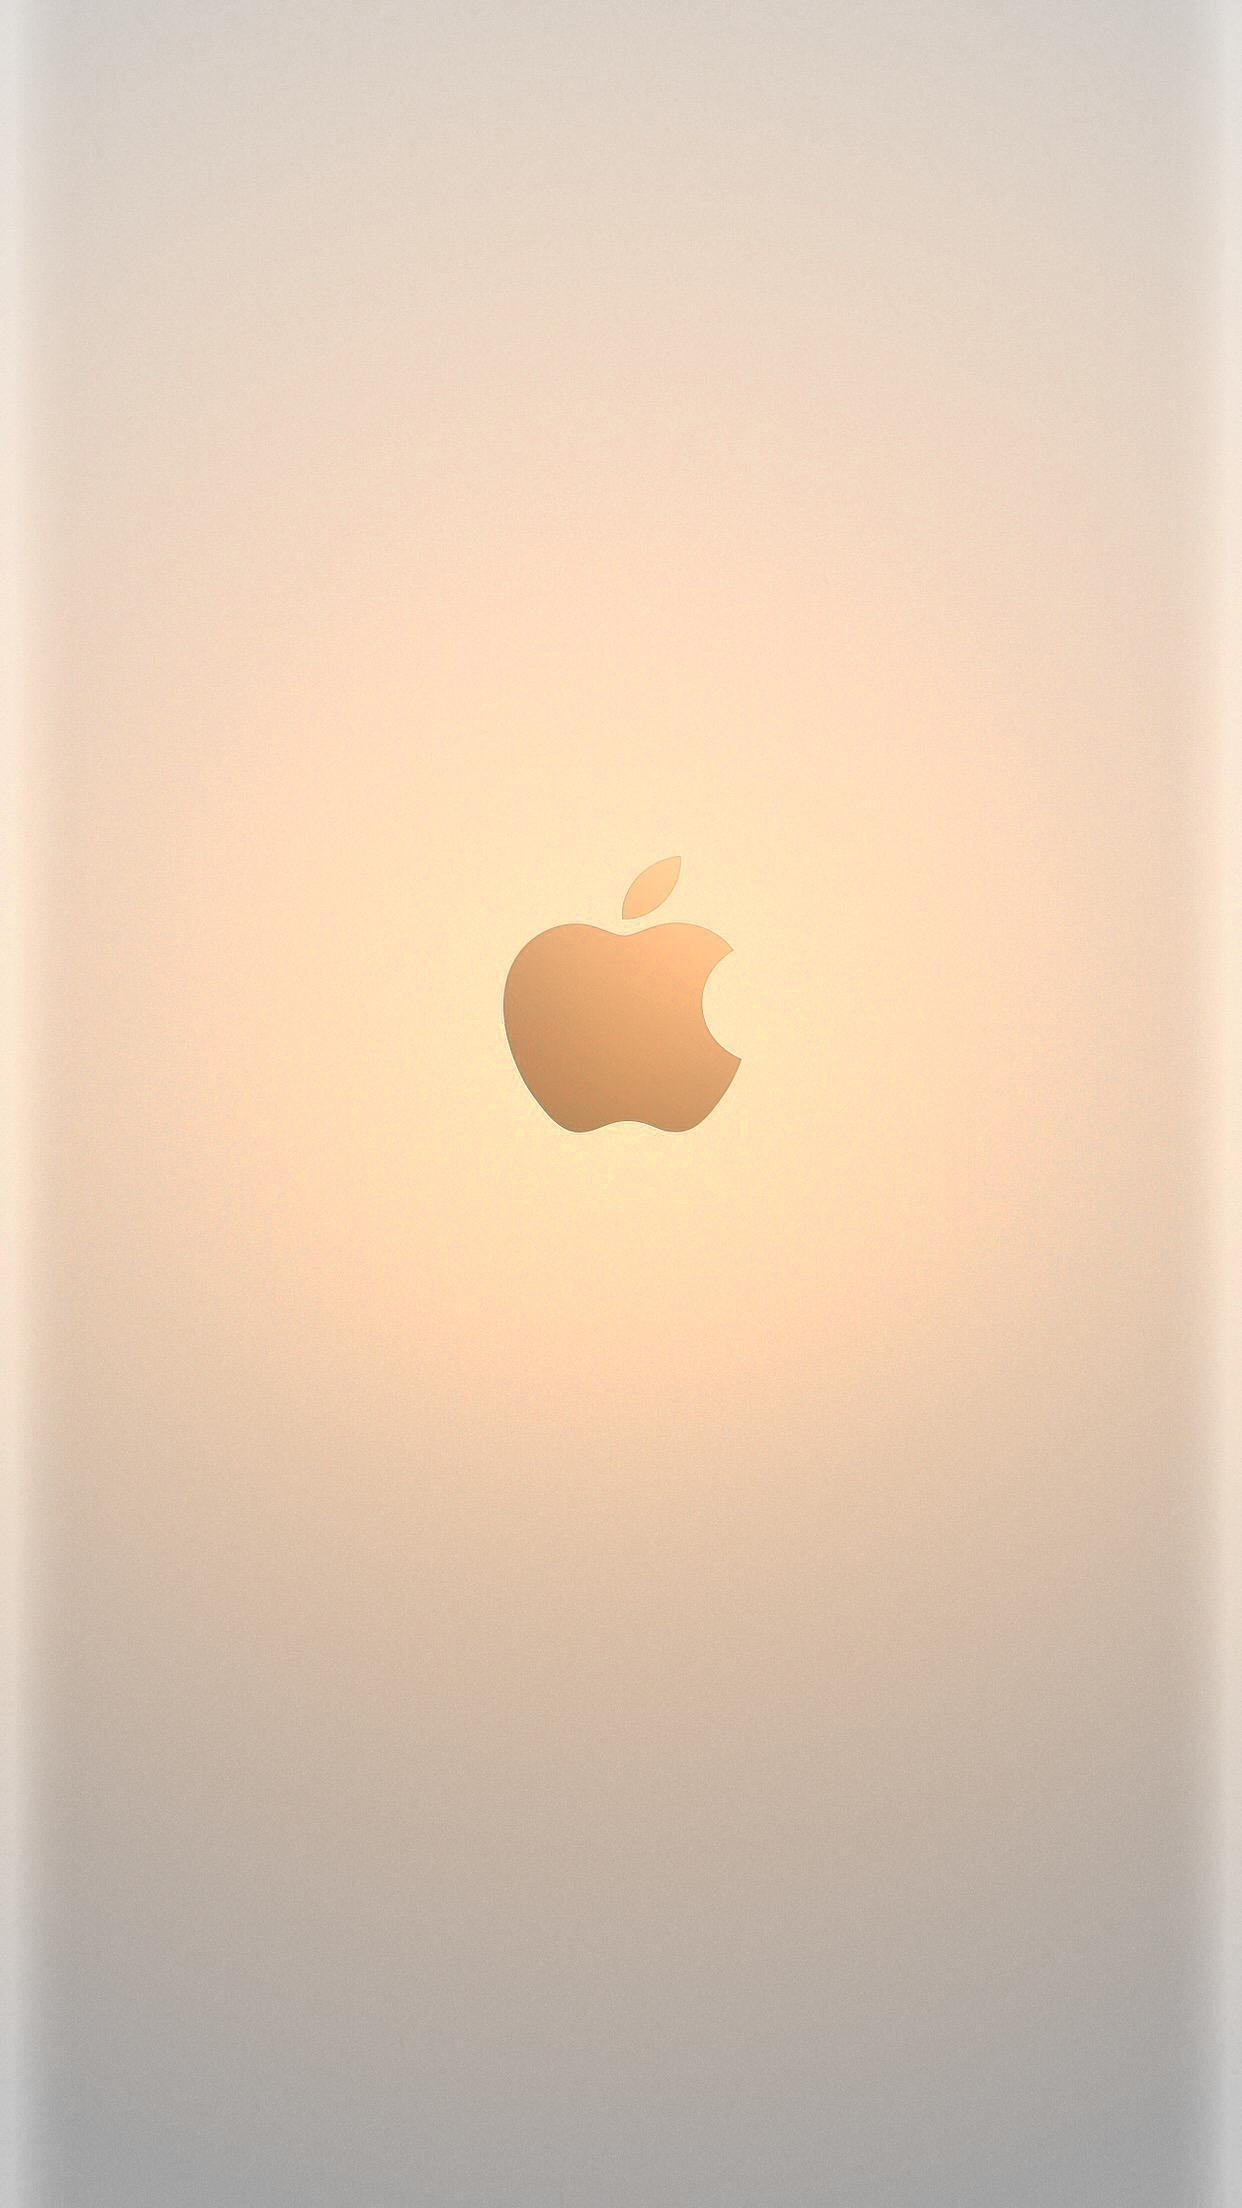 10 new iphone 7 rose gold wallpaper full hd for pc background